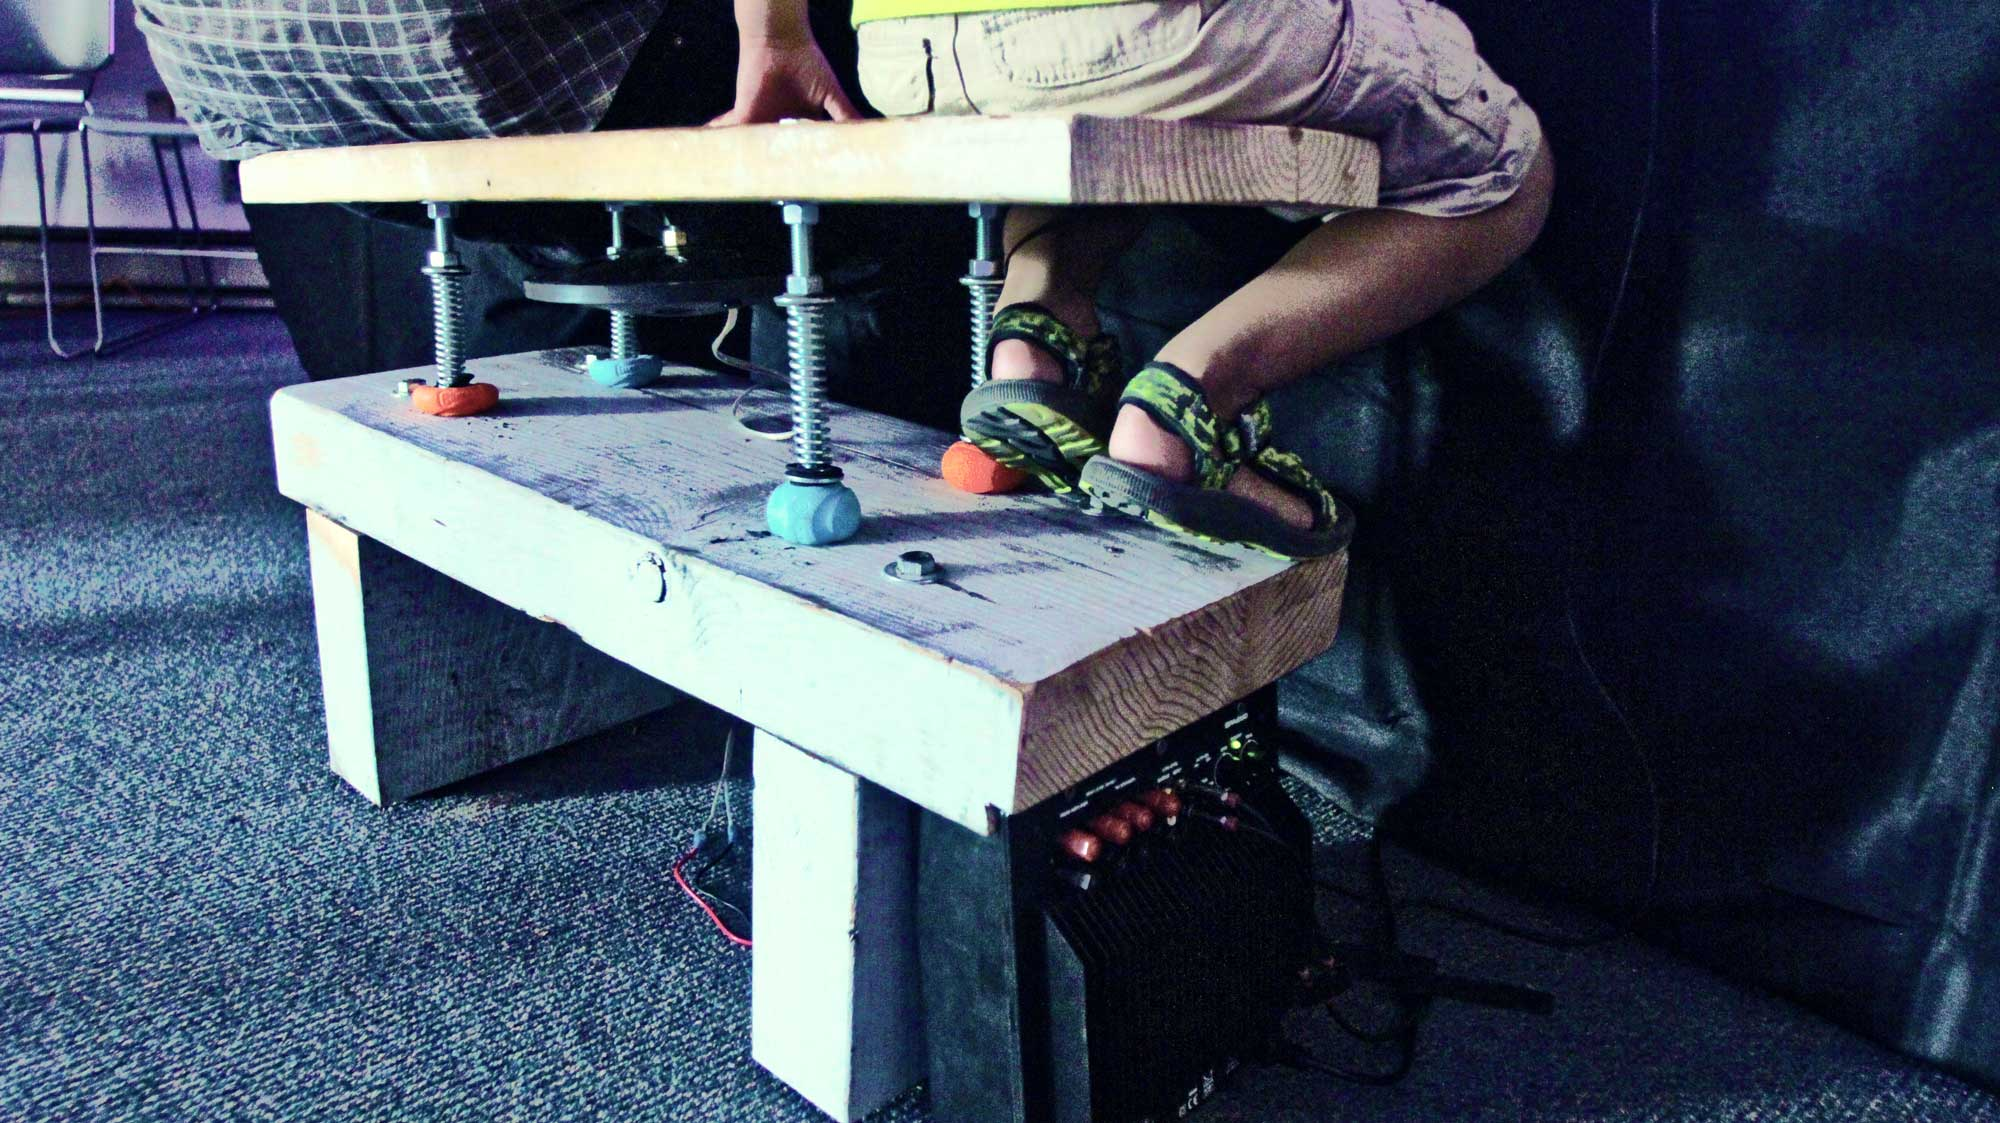 Two visitors sit on a vibro-haptic bench prototype designed at CymaSpace to feel sound and music via vibration and touch.